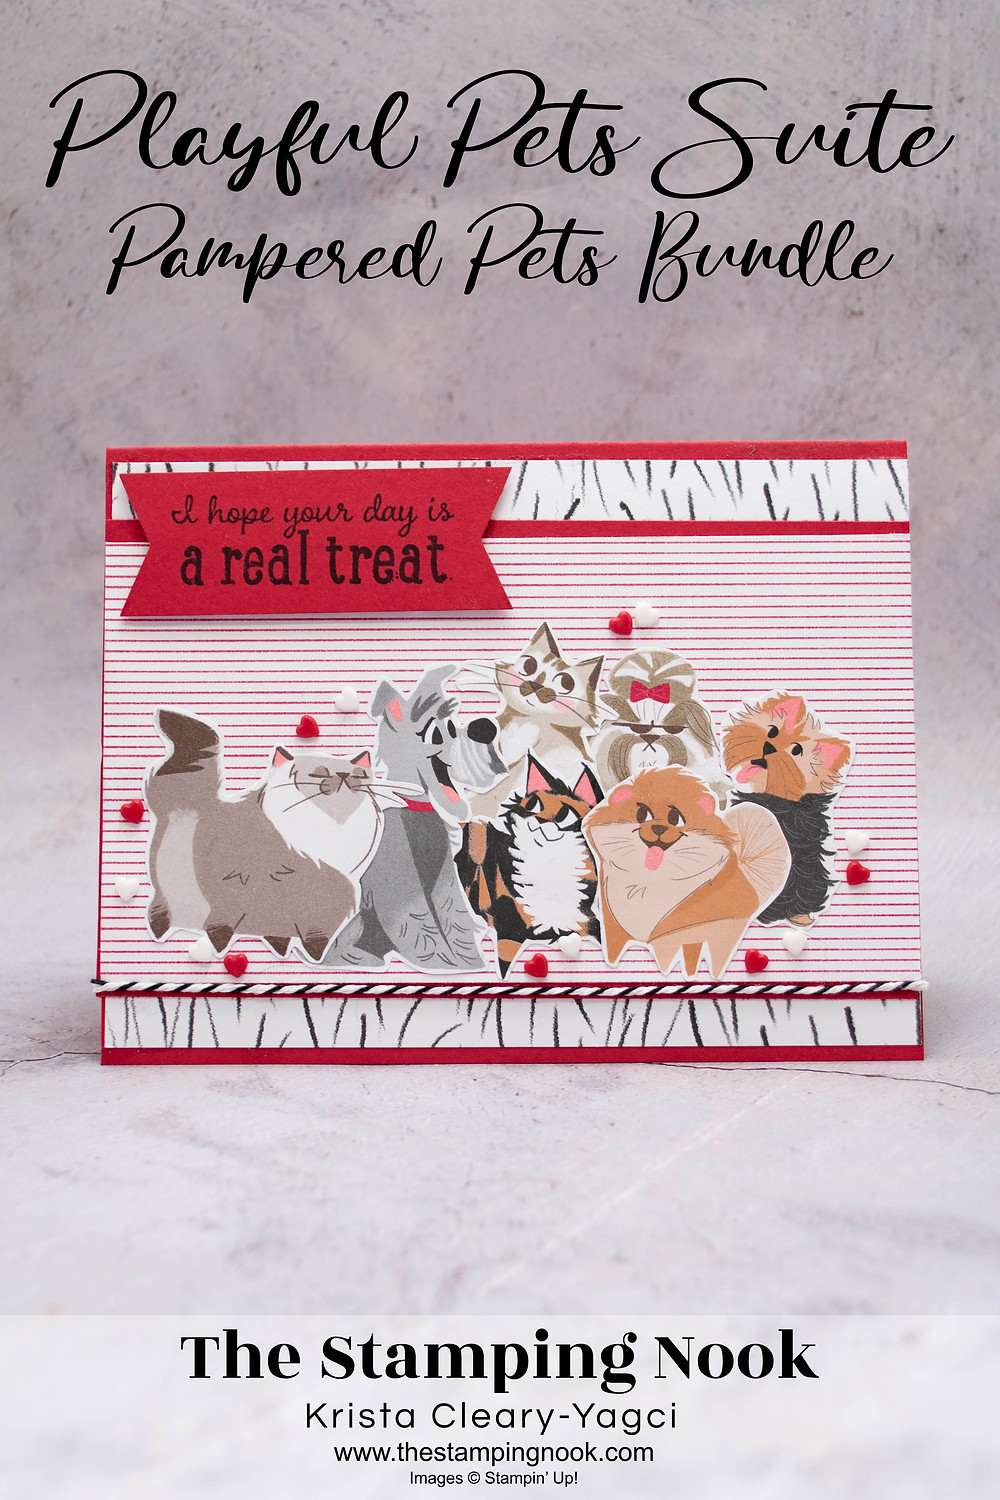 Stampin' Up! Card Ideas - Stampin' Up Pampered Pets Cards - Stampin' Up Playful Pets Cards by The Stamping Nook Krista Cleary-Yagci